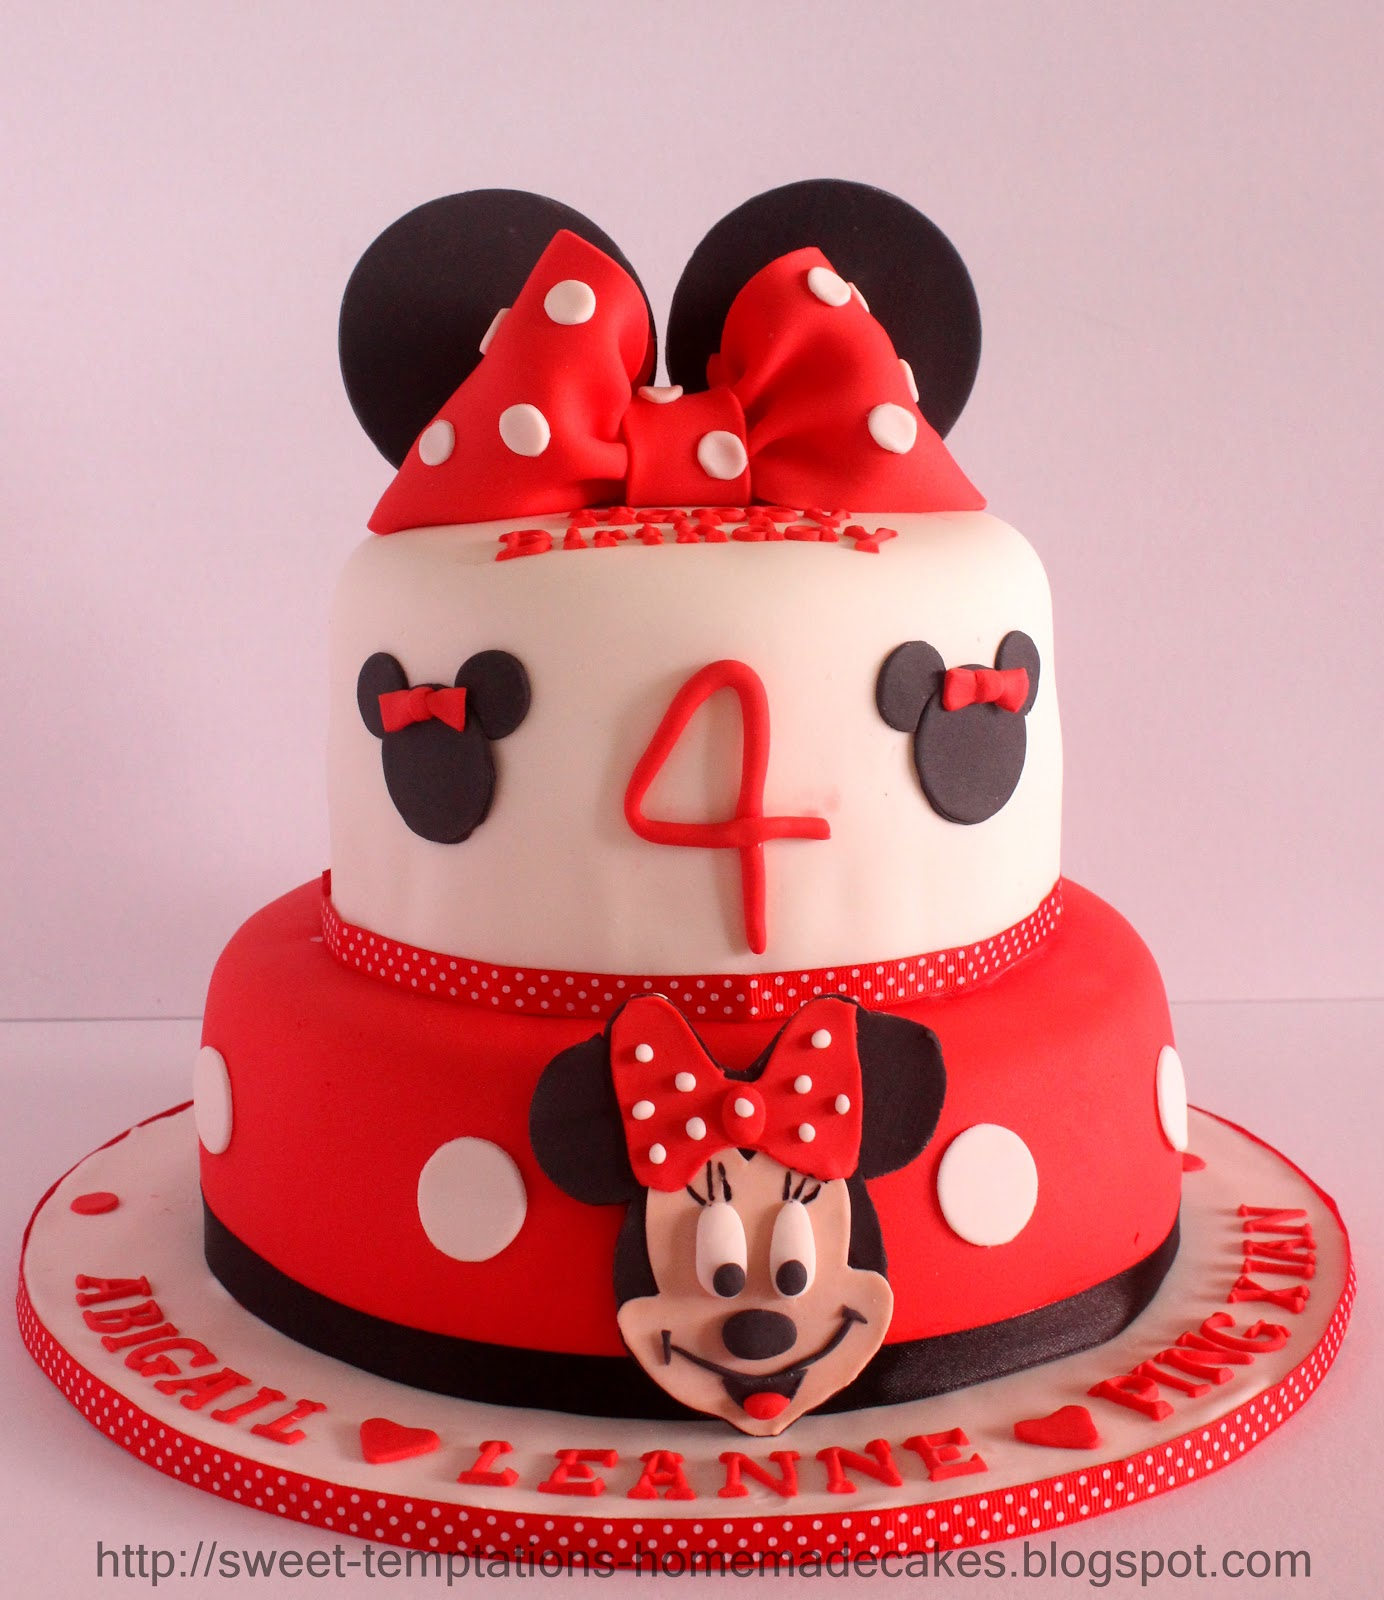 Sweet Temptations Homemade Cakes Amp Pastry 2 Tier Minnie